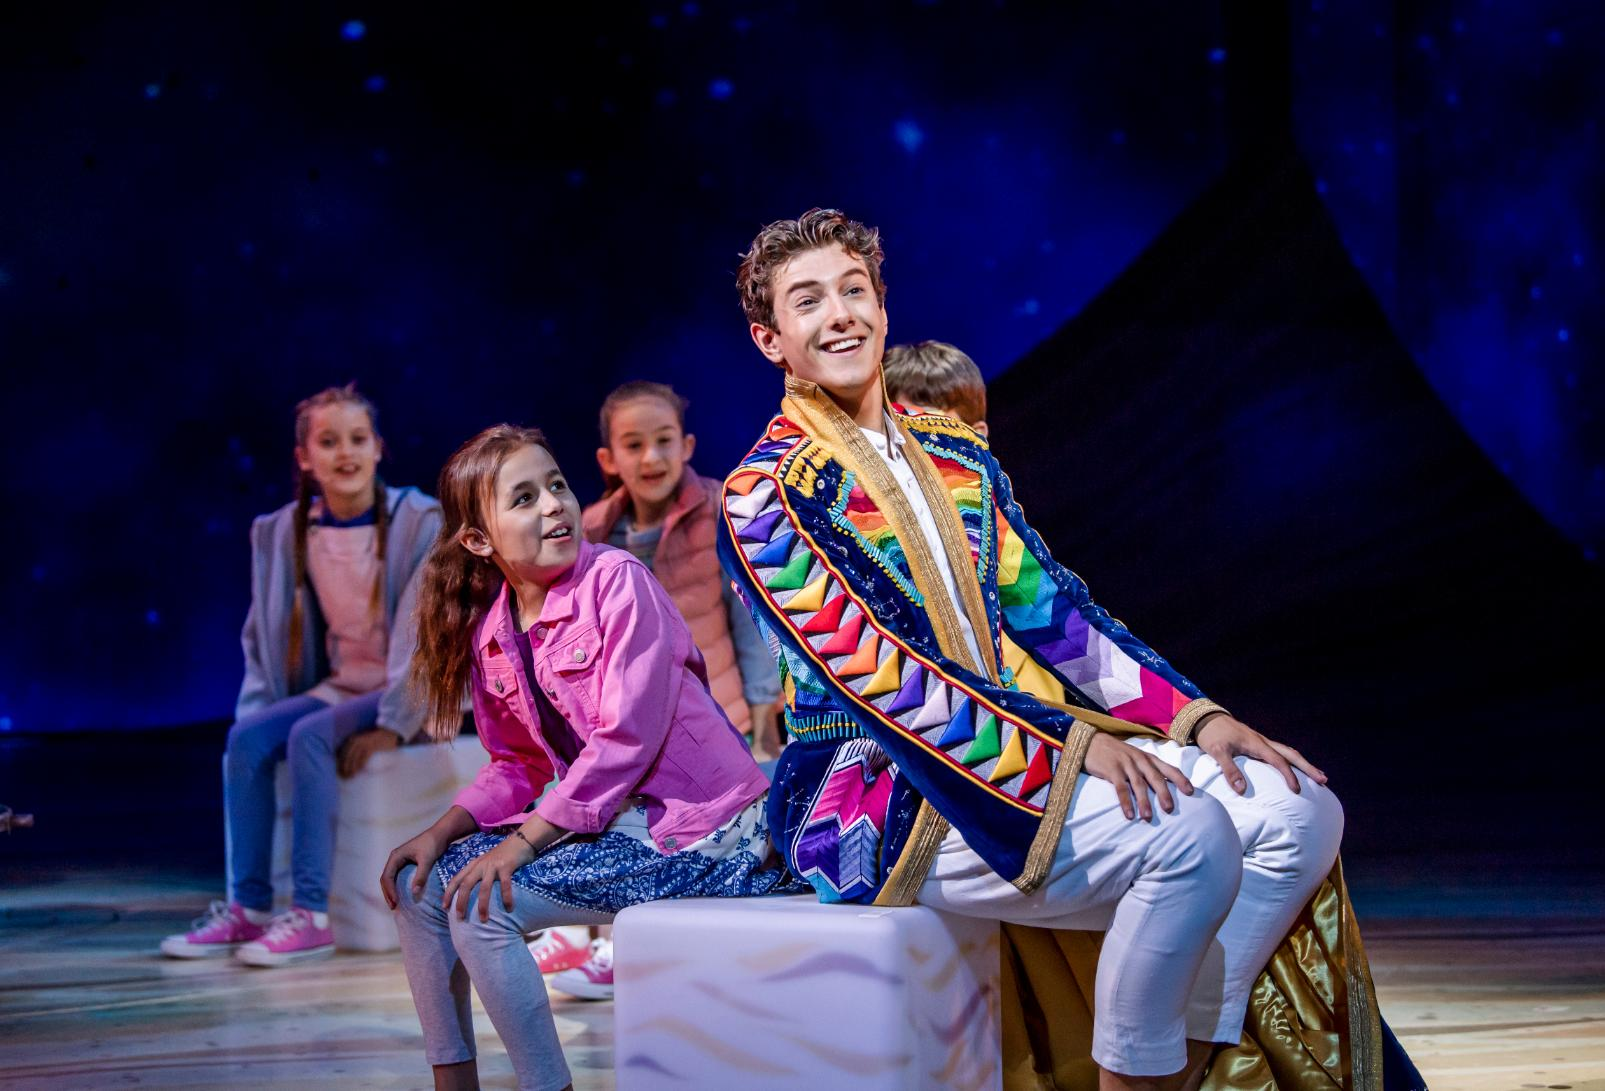 close-every-door-just-for-12-months-joseph-the-amazing-technicolor-dreamcoat-returns-in-2021